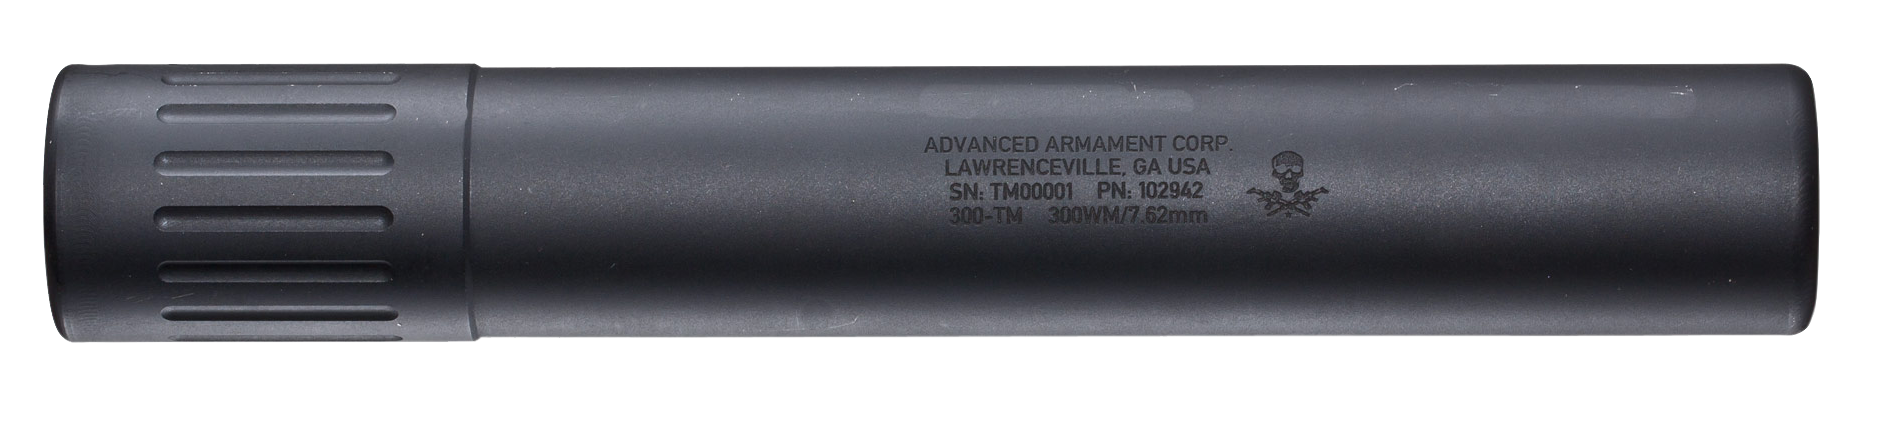 AAC 300-TM Rifle Suppressor